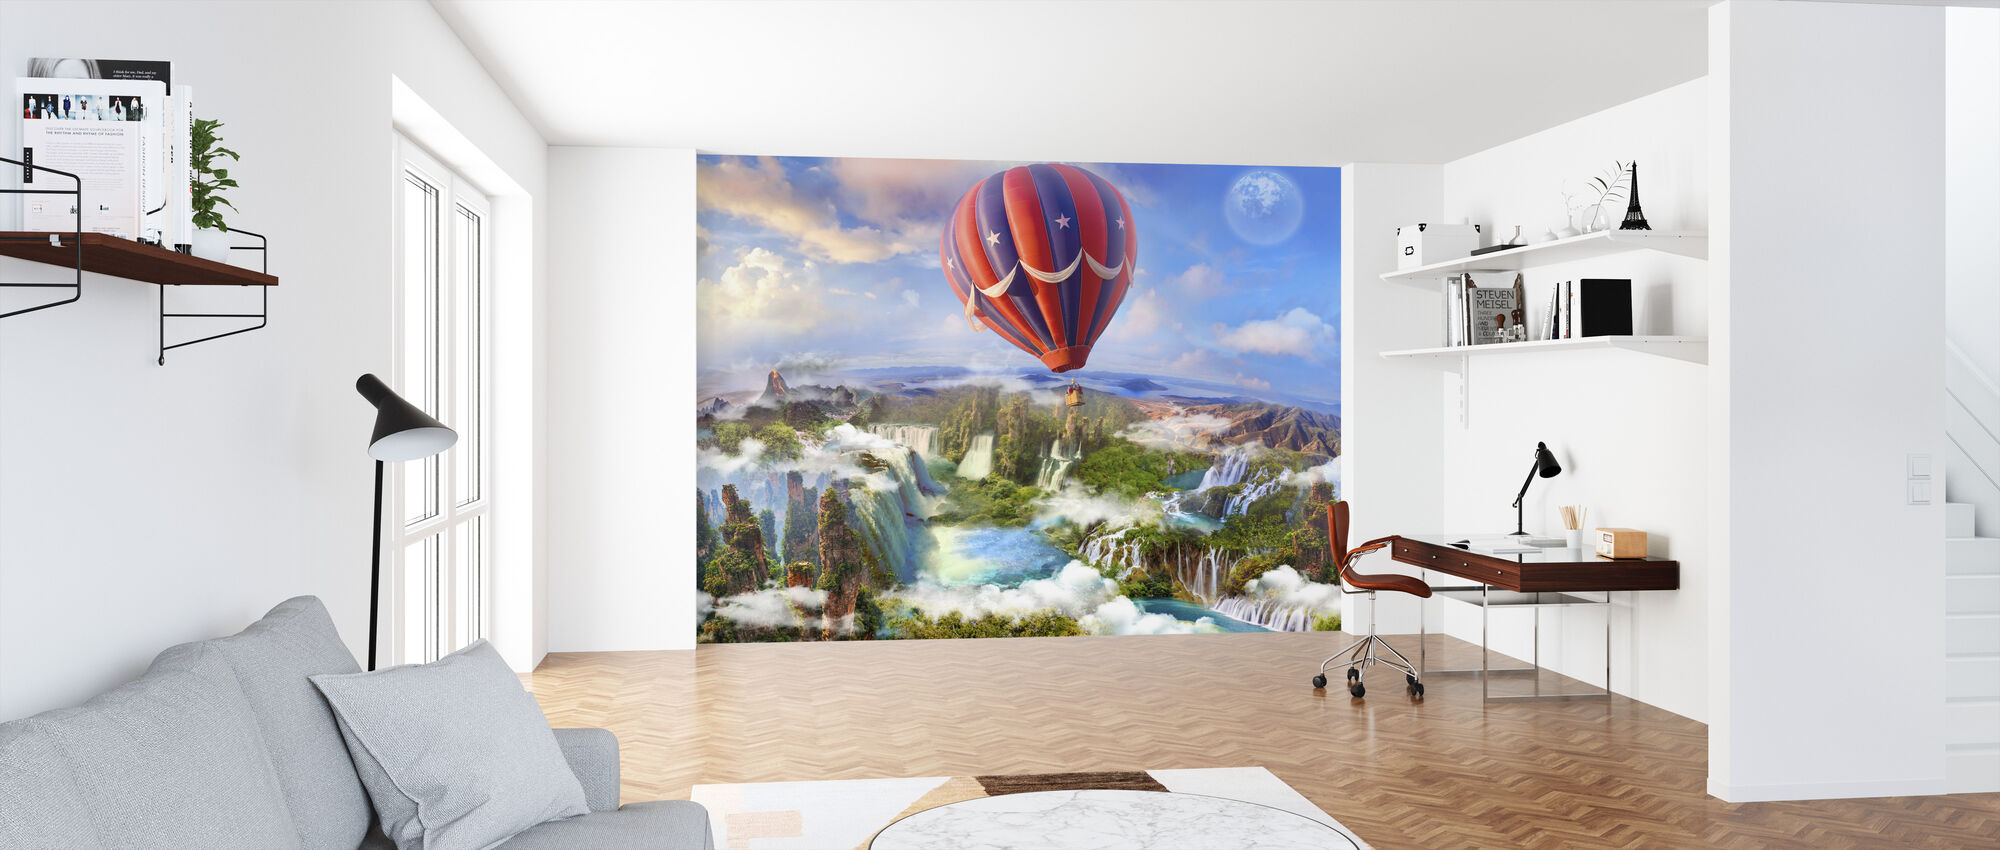 Hot Air Balloon - Wallpaper - Office